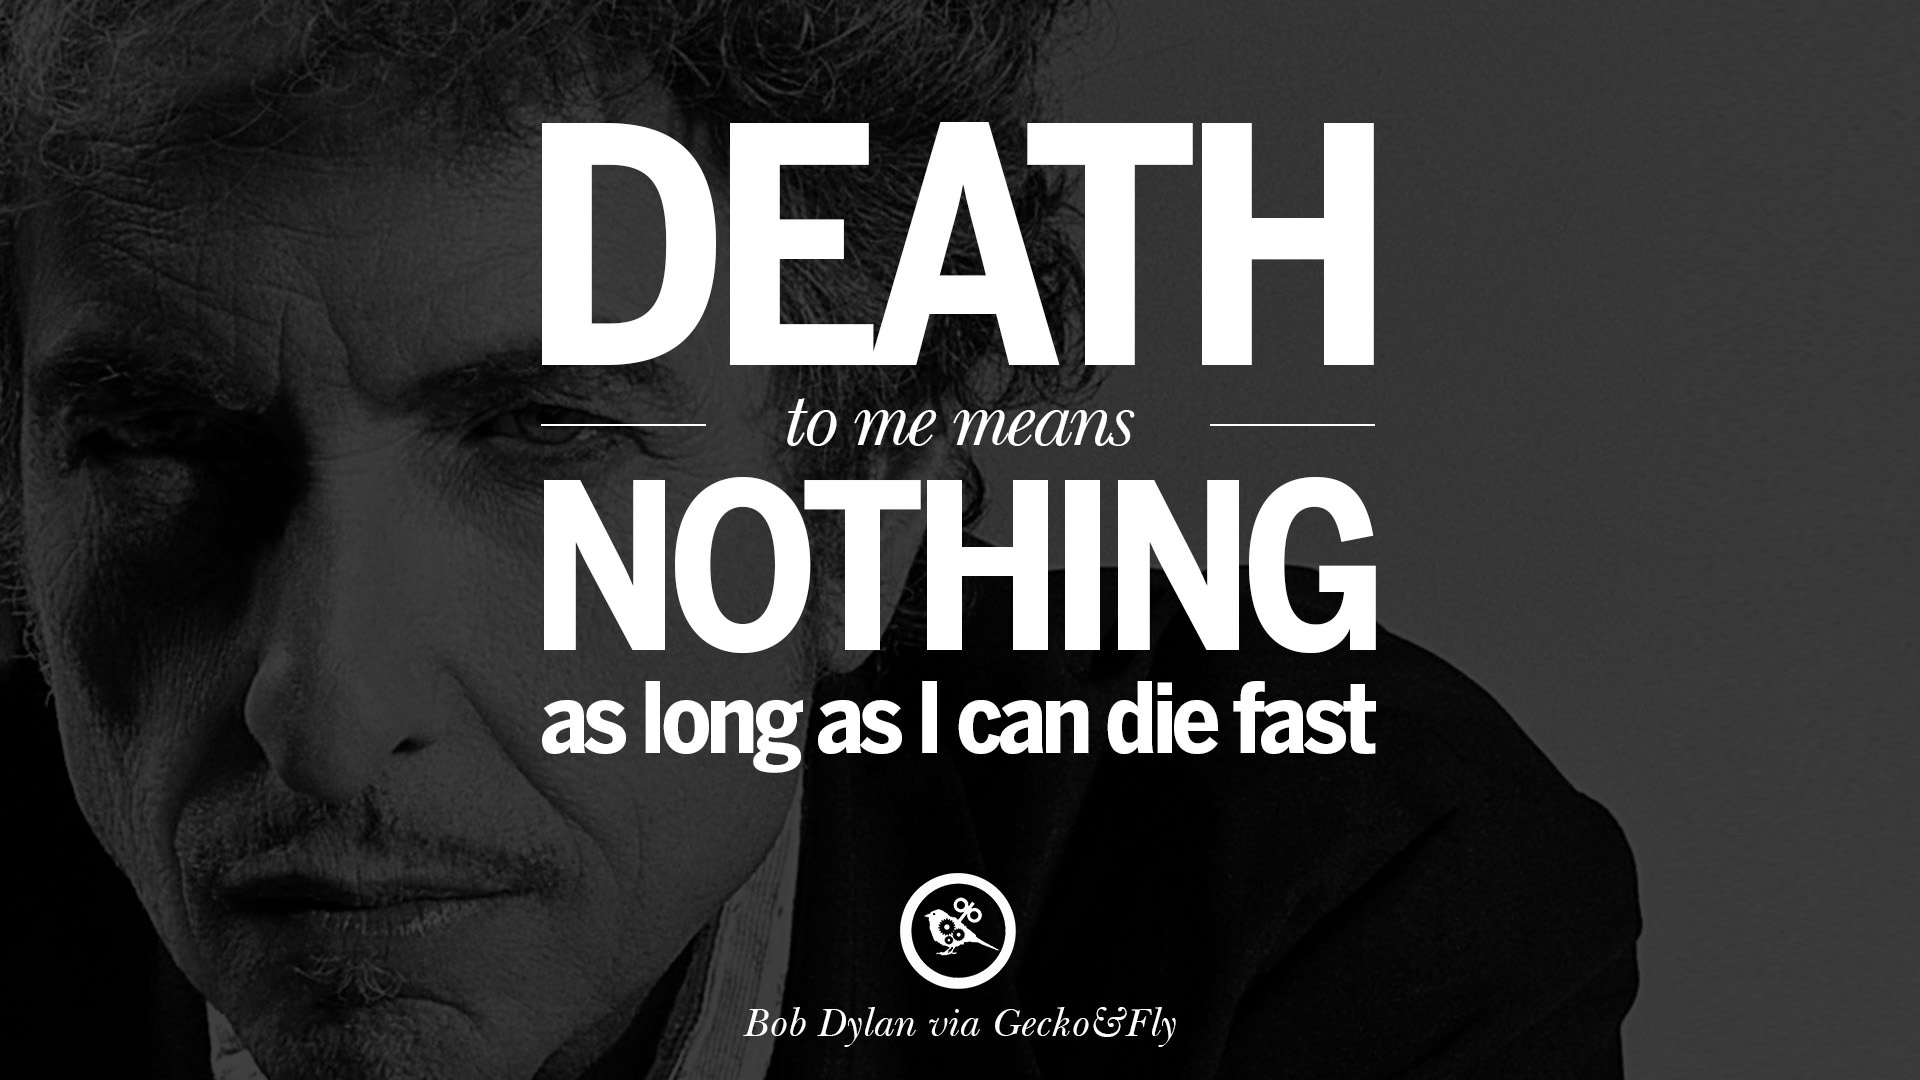 27 Inspirational Bob Dylan Quotes On Freedom, Love Via His